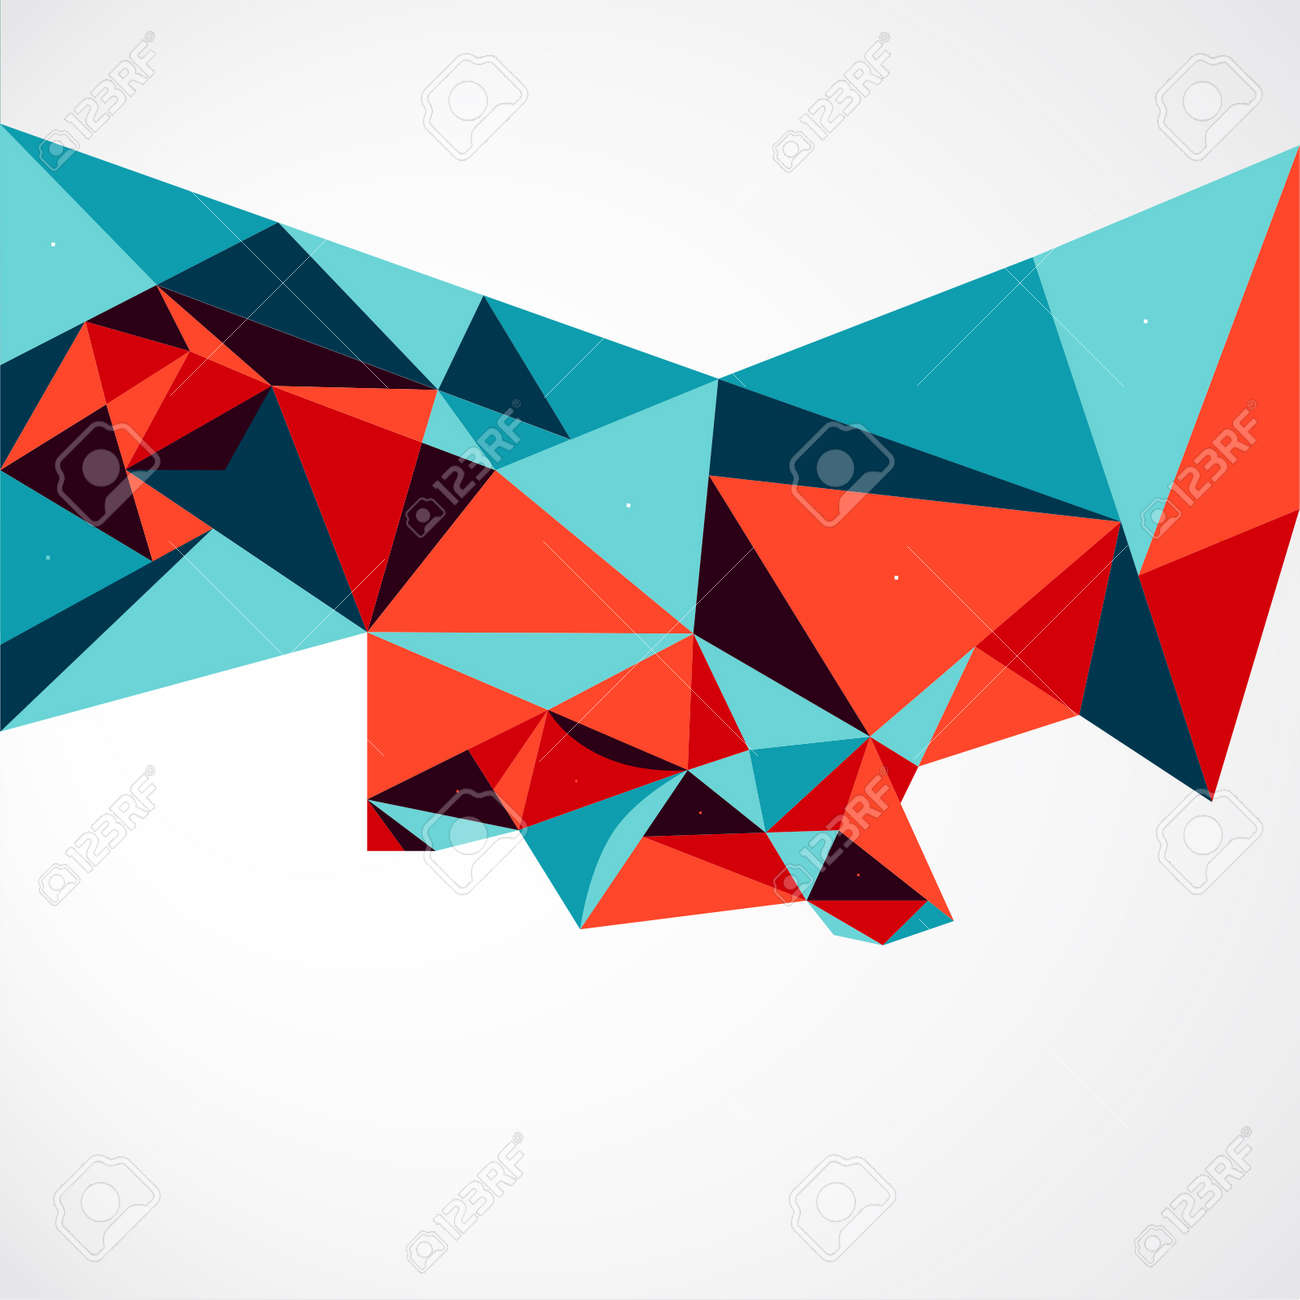 Vector Abstract Geometric Polygon Background. - 38662582